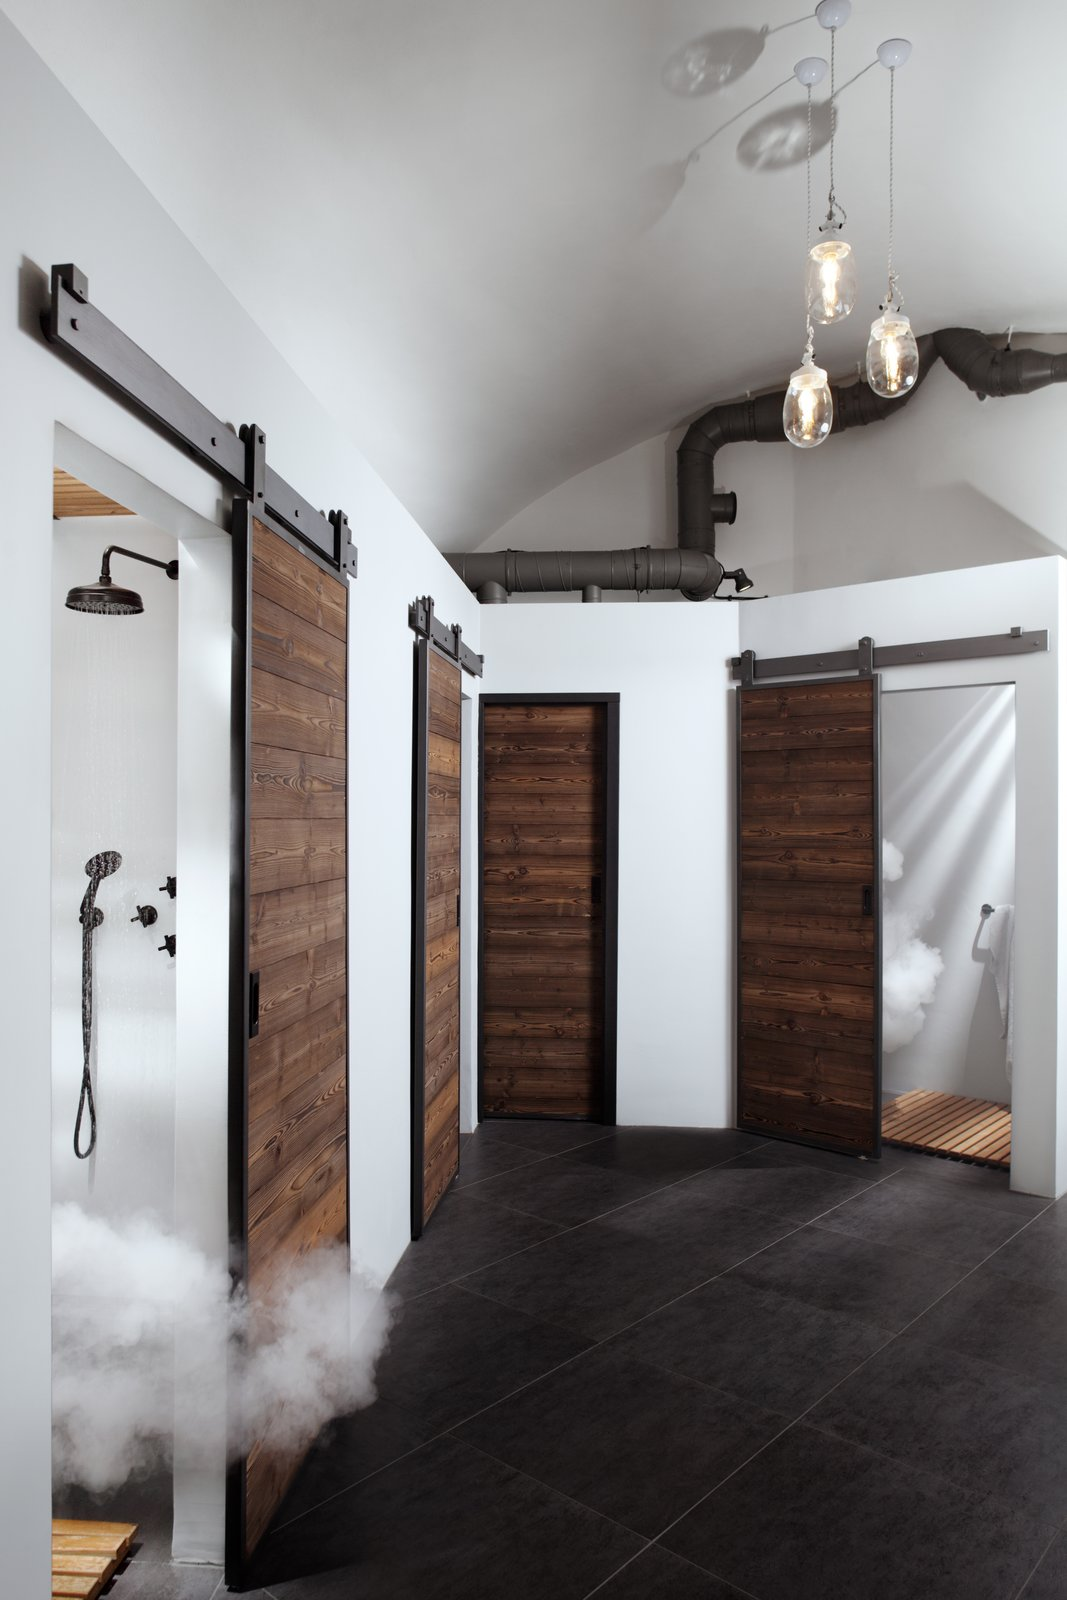 Doors Sliding Door Type Wood and Interior Sliding wood barn doors conceal shower & Photo 10 of 20 in A Stylish Hostel in a Historic Czech Fortress ...